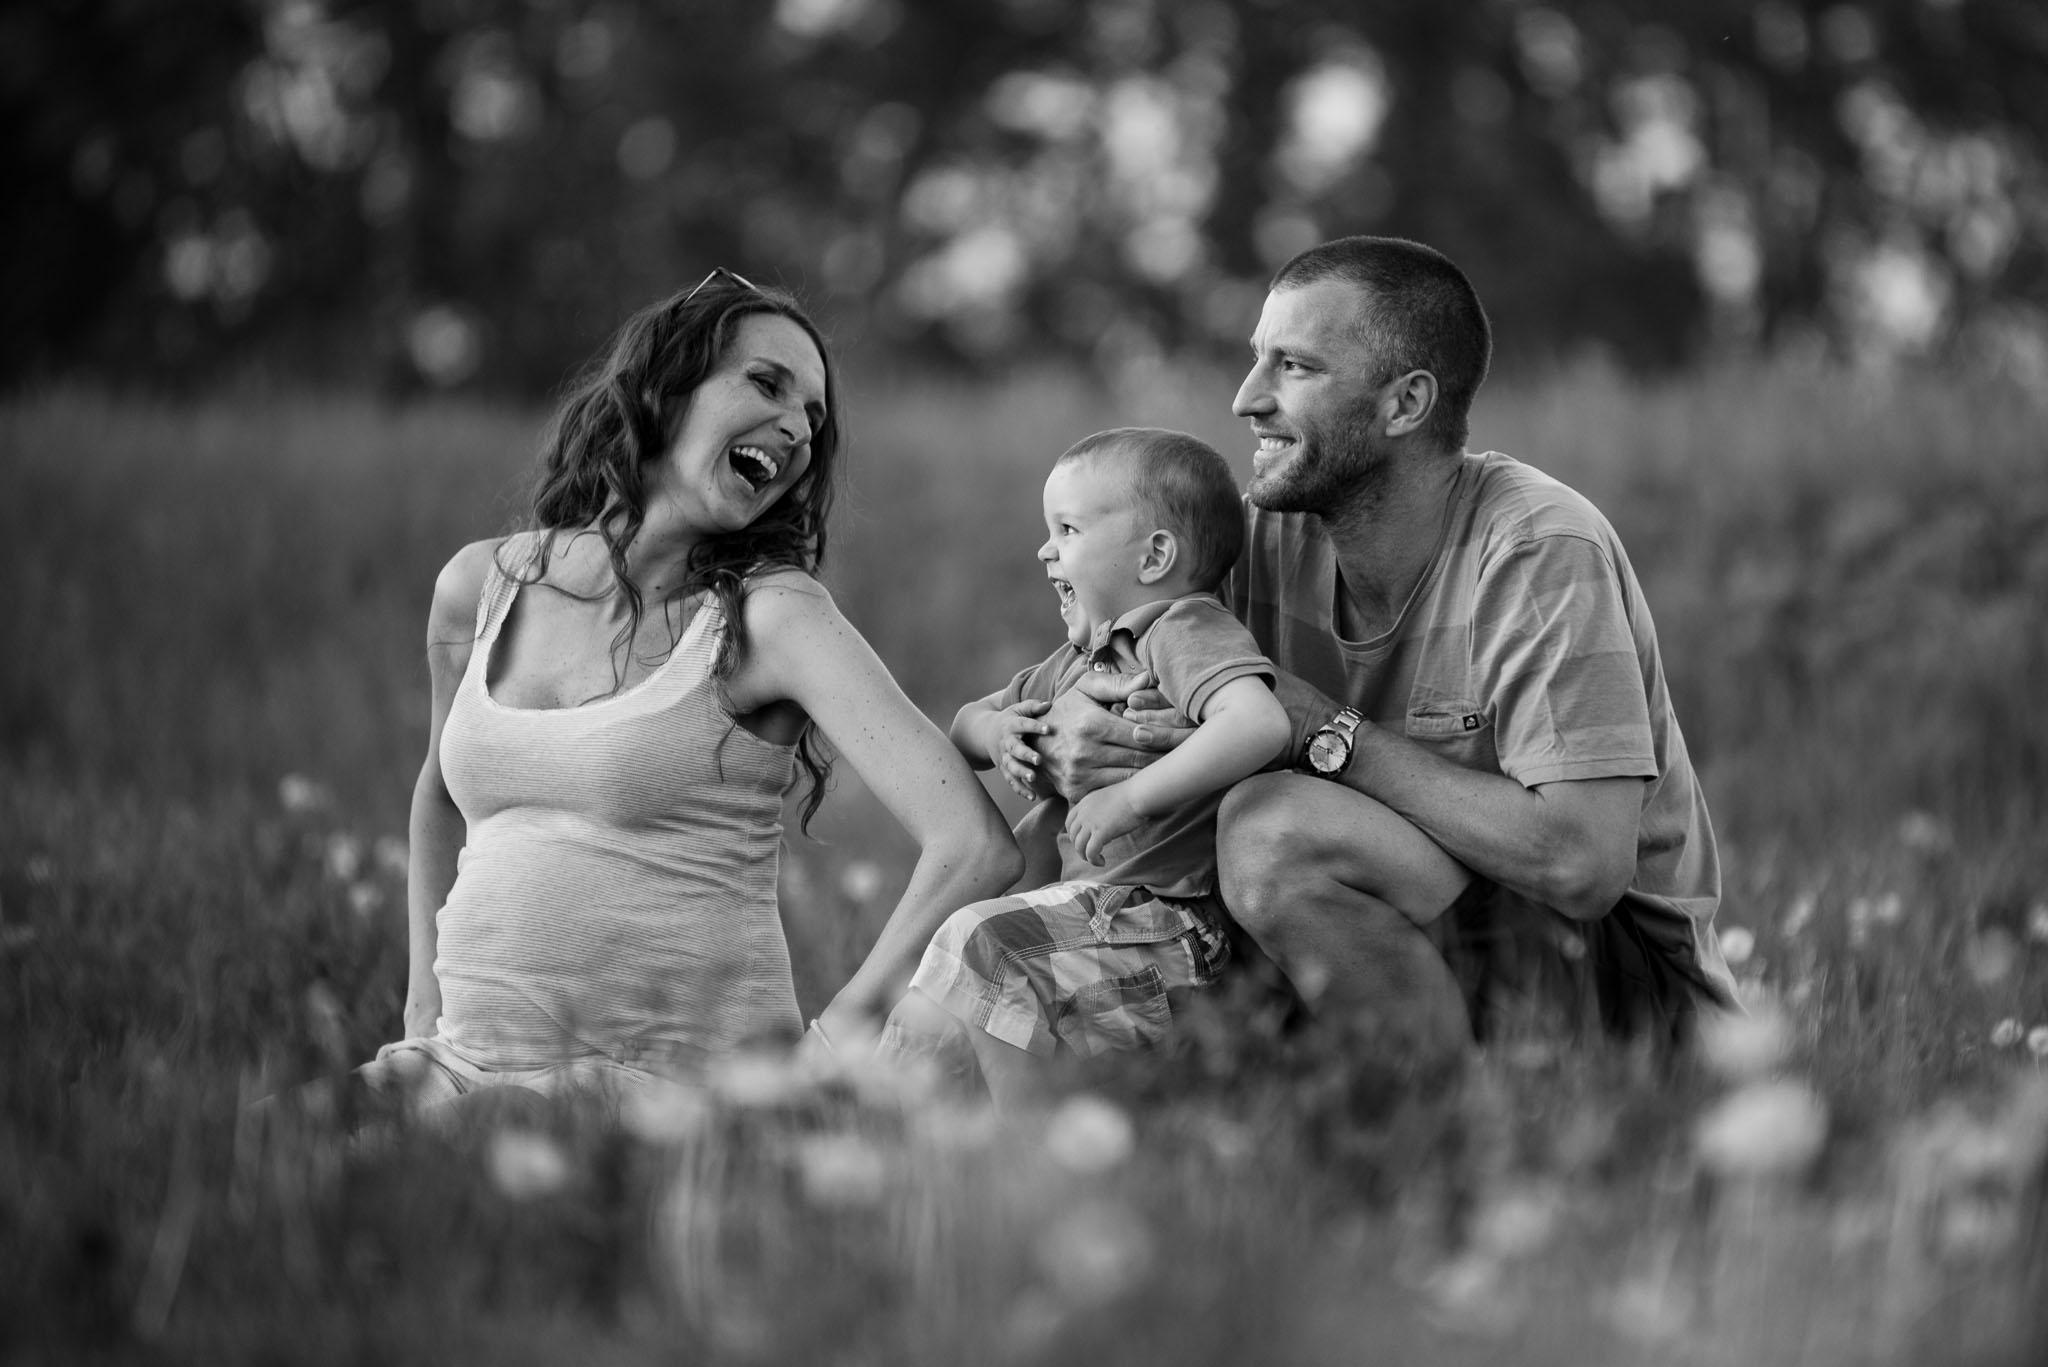 Family and pregnant photos | Kika, Martin and Tino